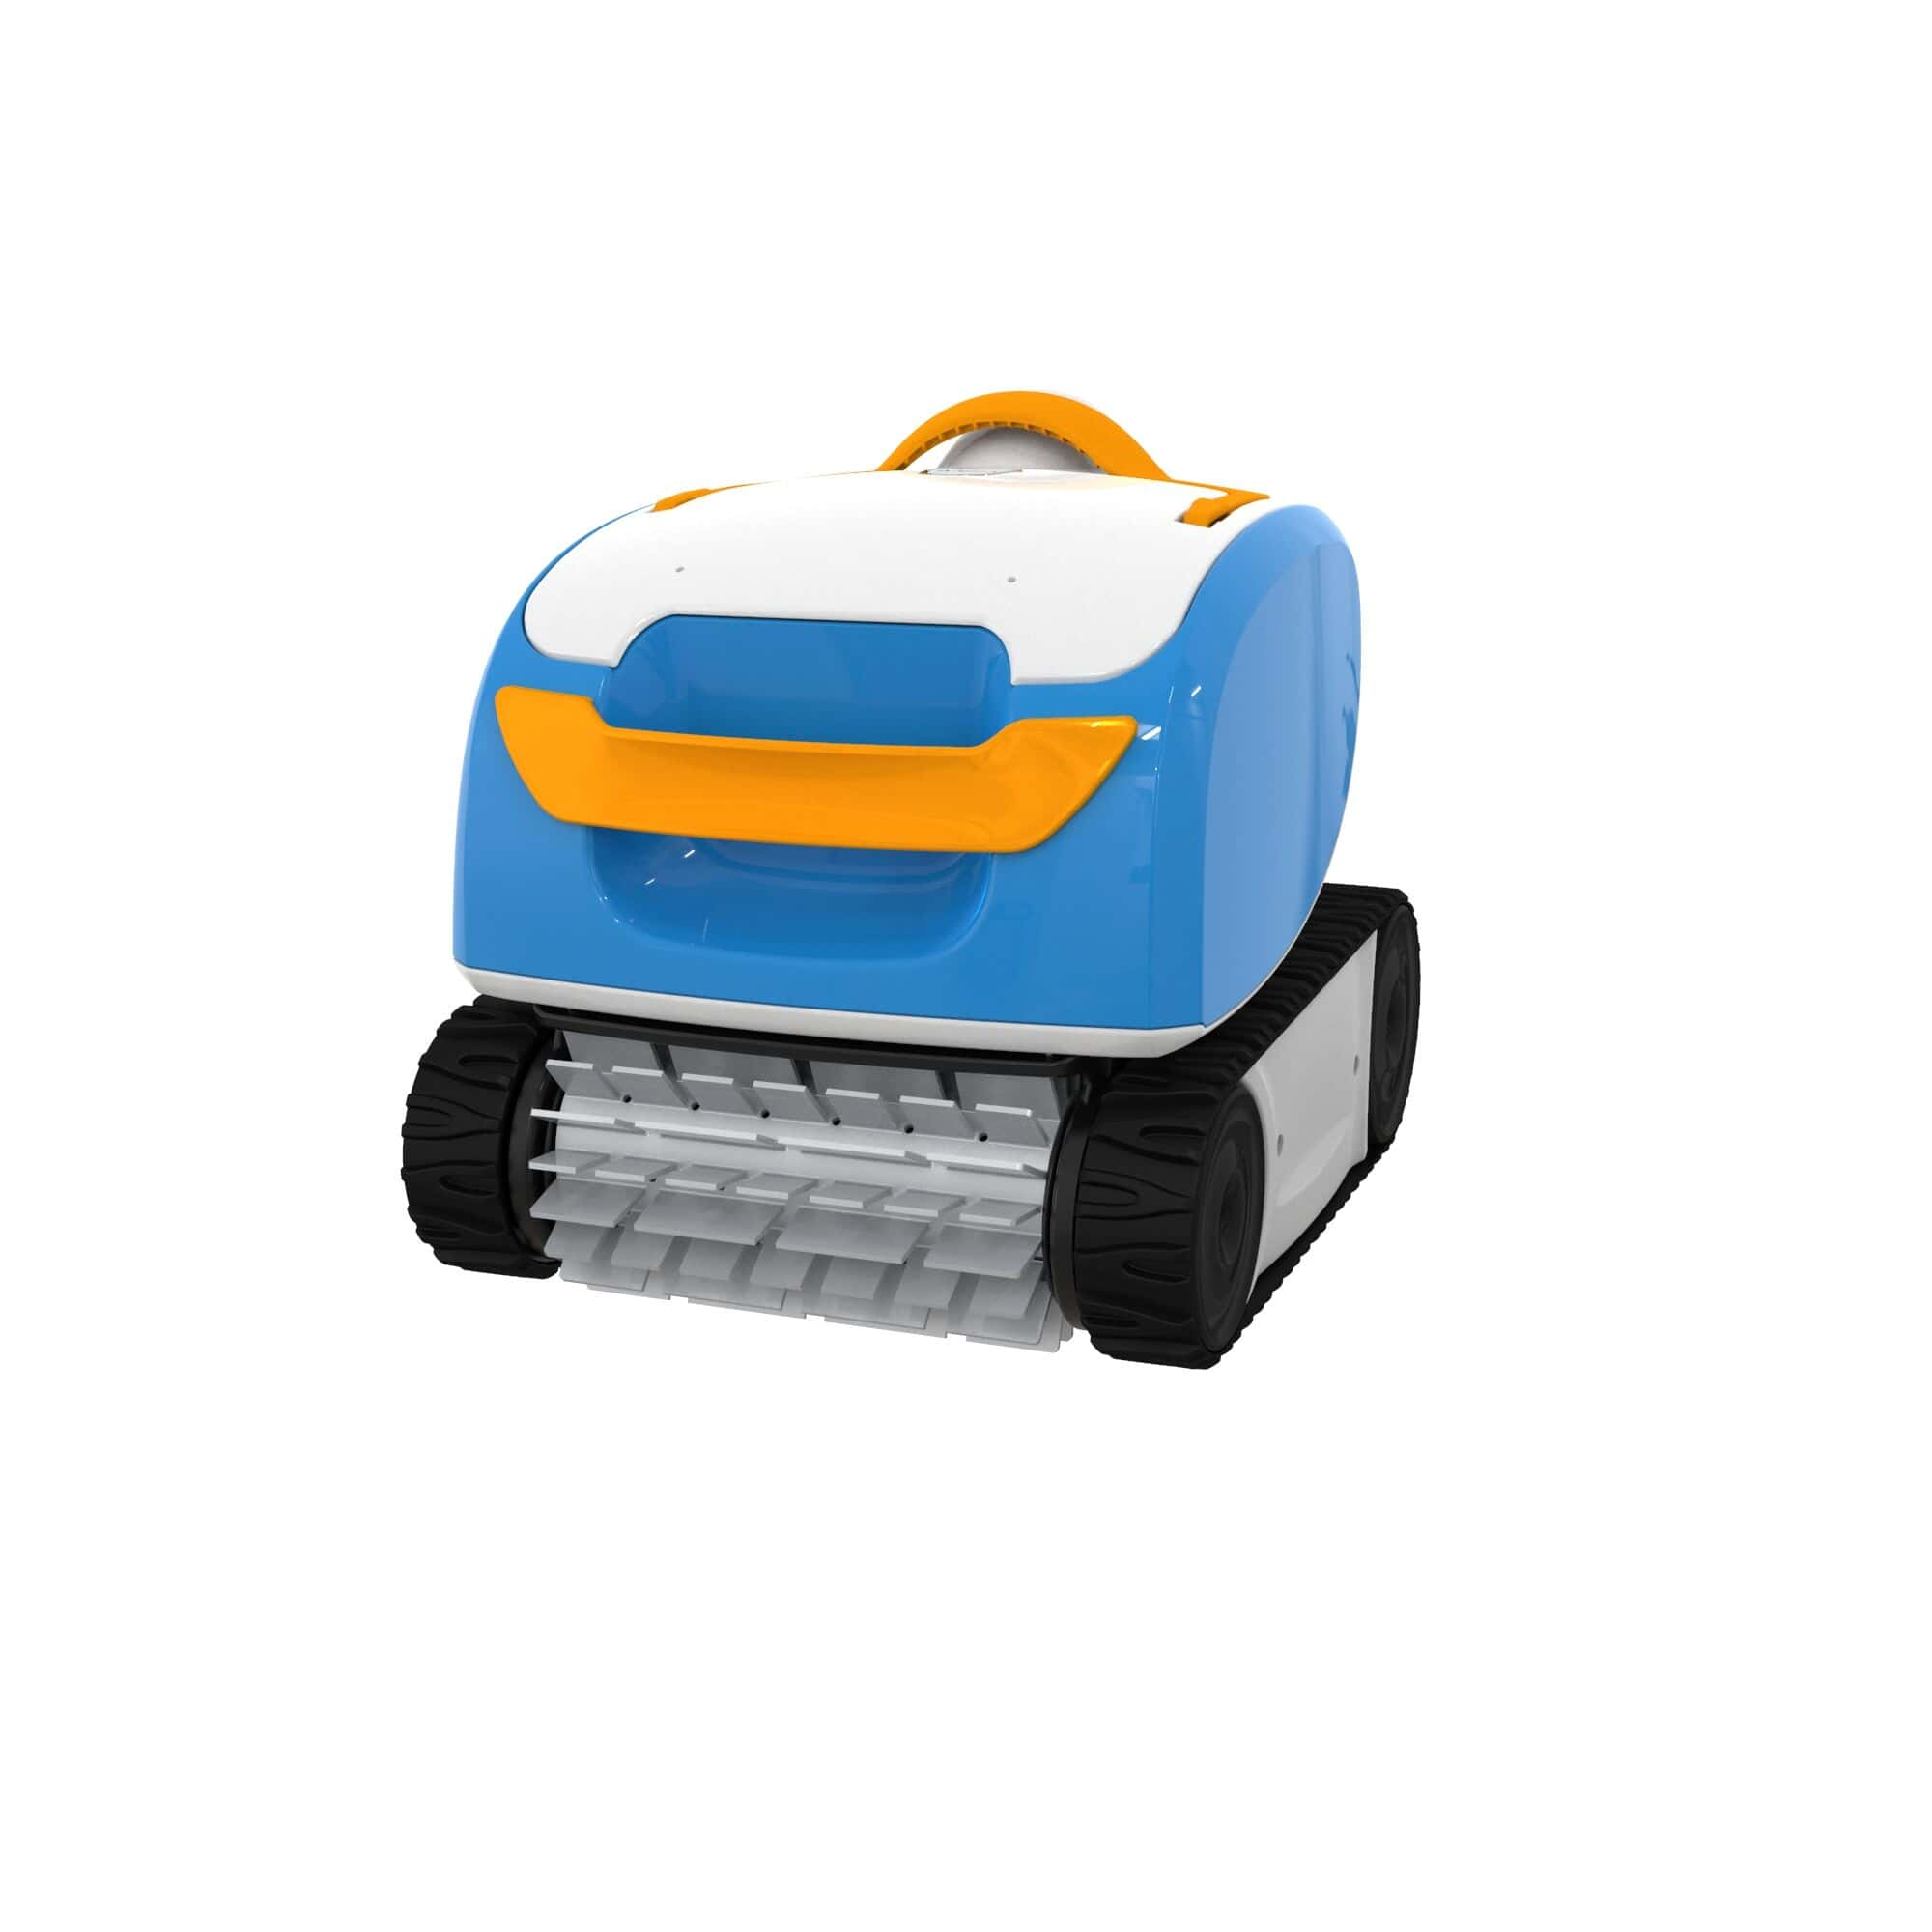 Aqua Products Sol in ground pool cleaner